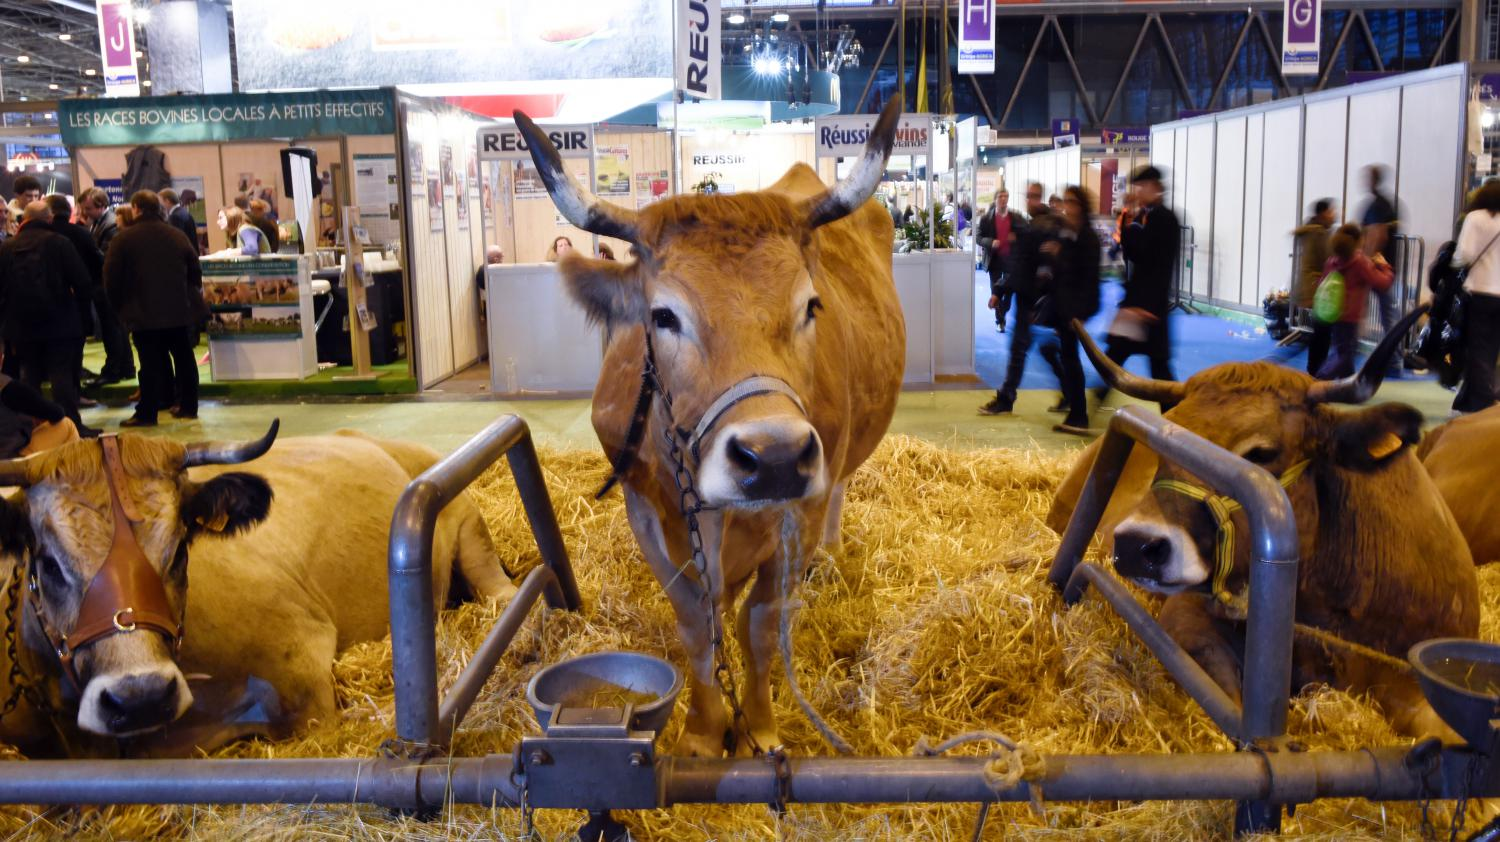 Le Salon De L Agriculture A Paris Video Quel Bilan Pour Le Salon De L Agriculture